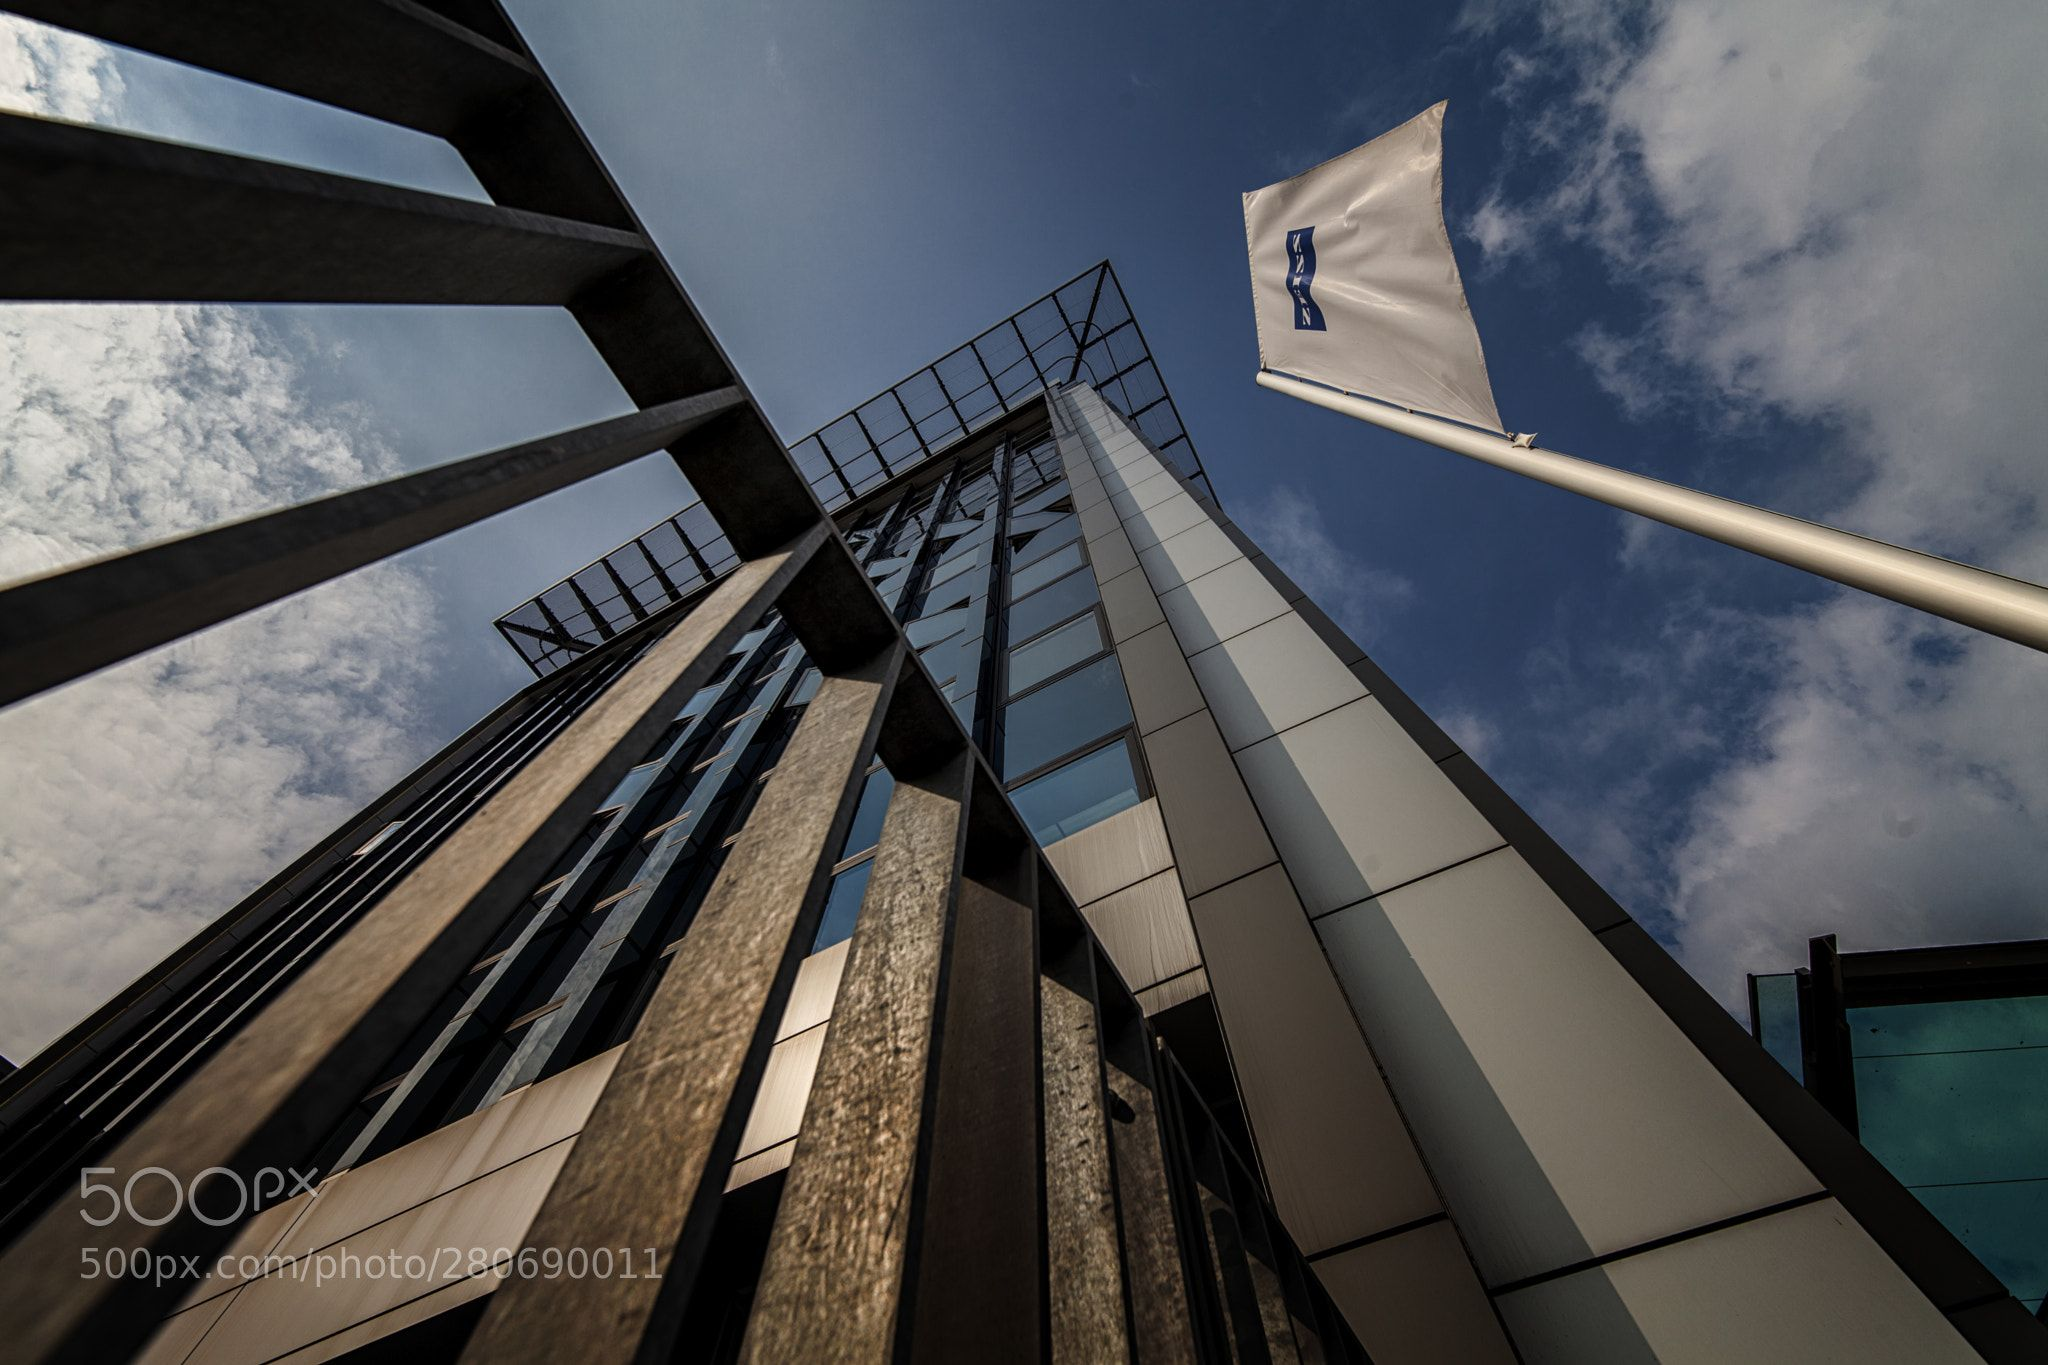 Zeiss Group by pavelkozdas | 500px[City & Architecture